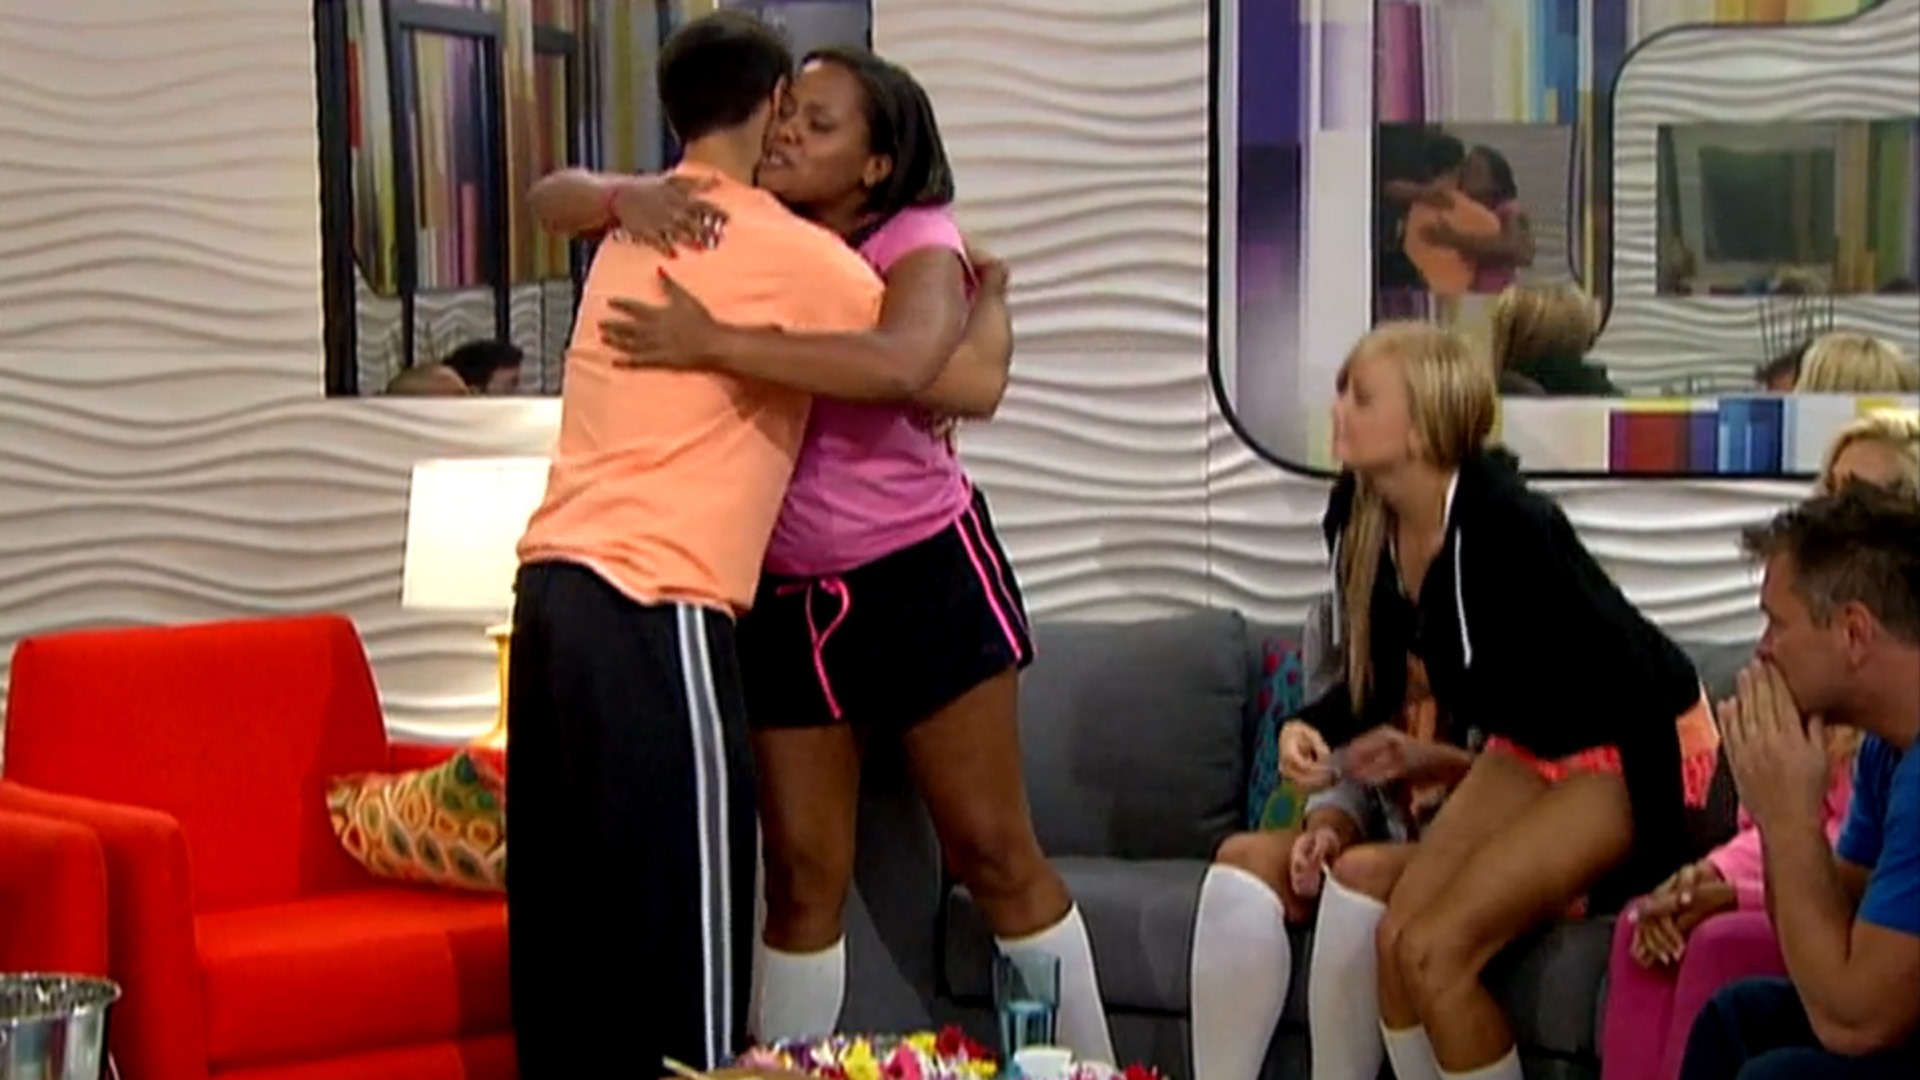 The first Houseguest to get eliminated on Day 1